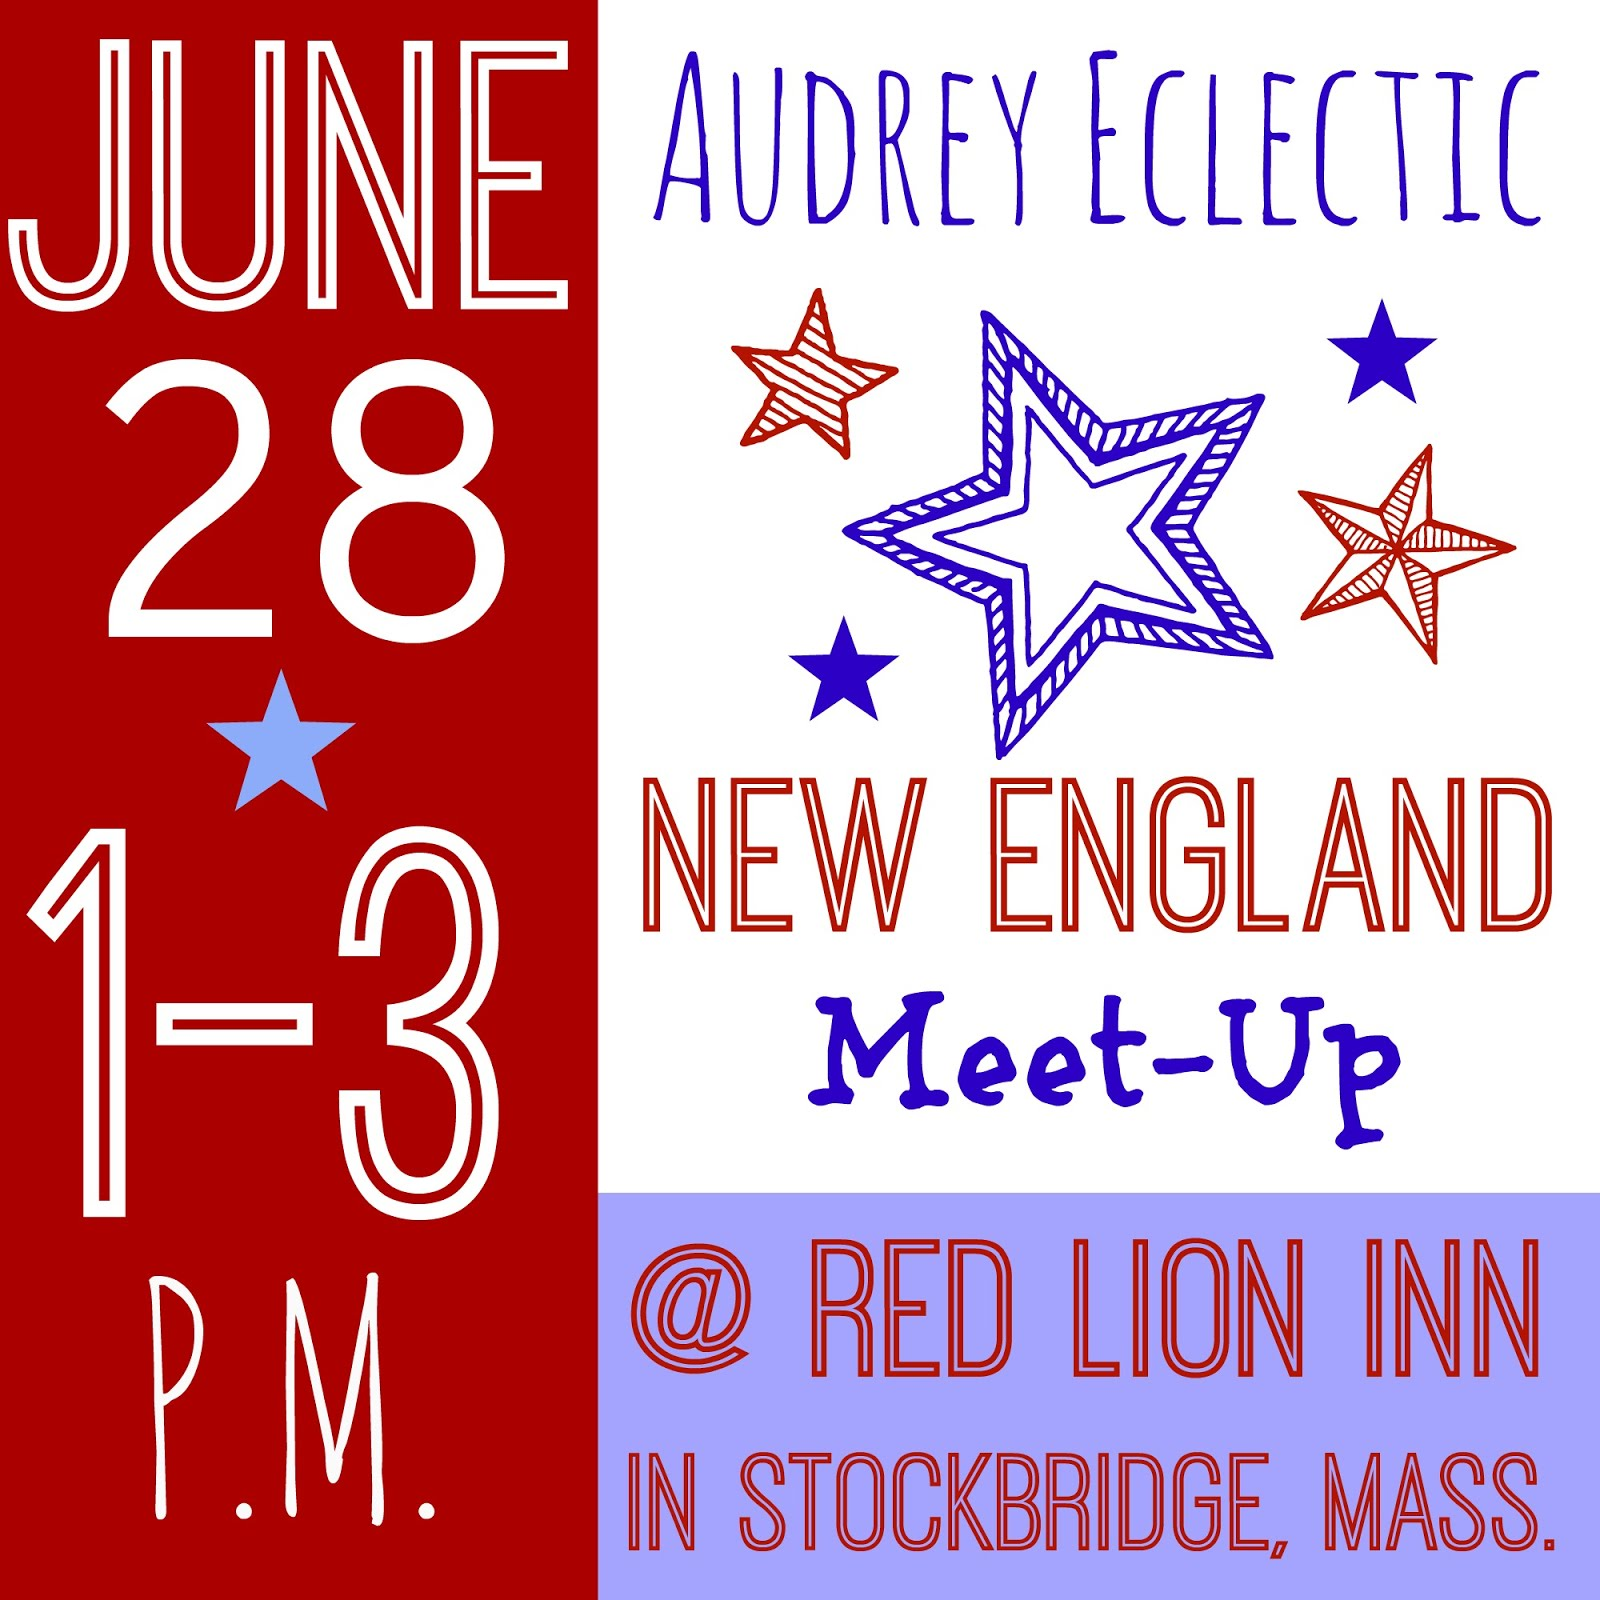 New England Meet-Up